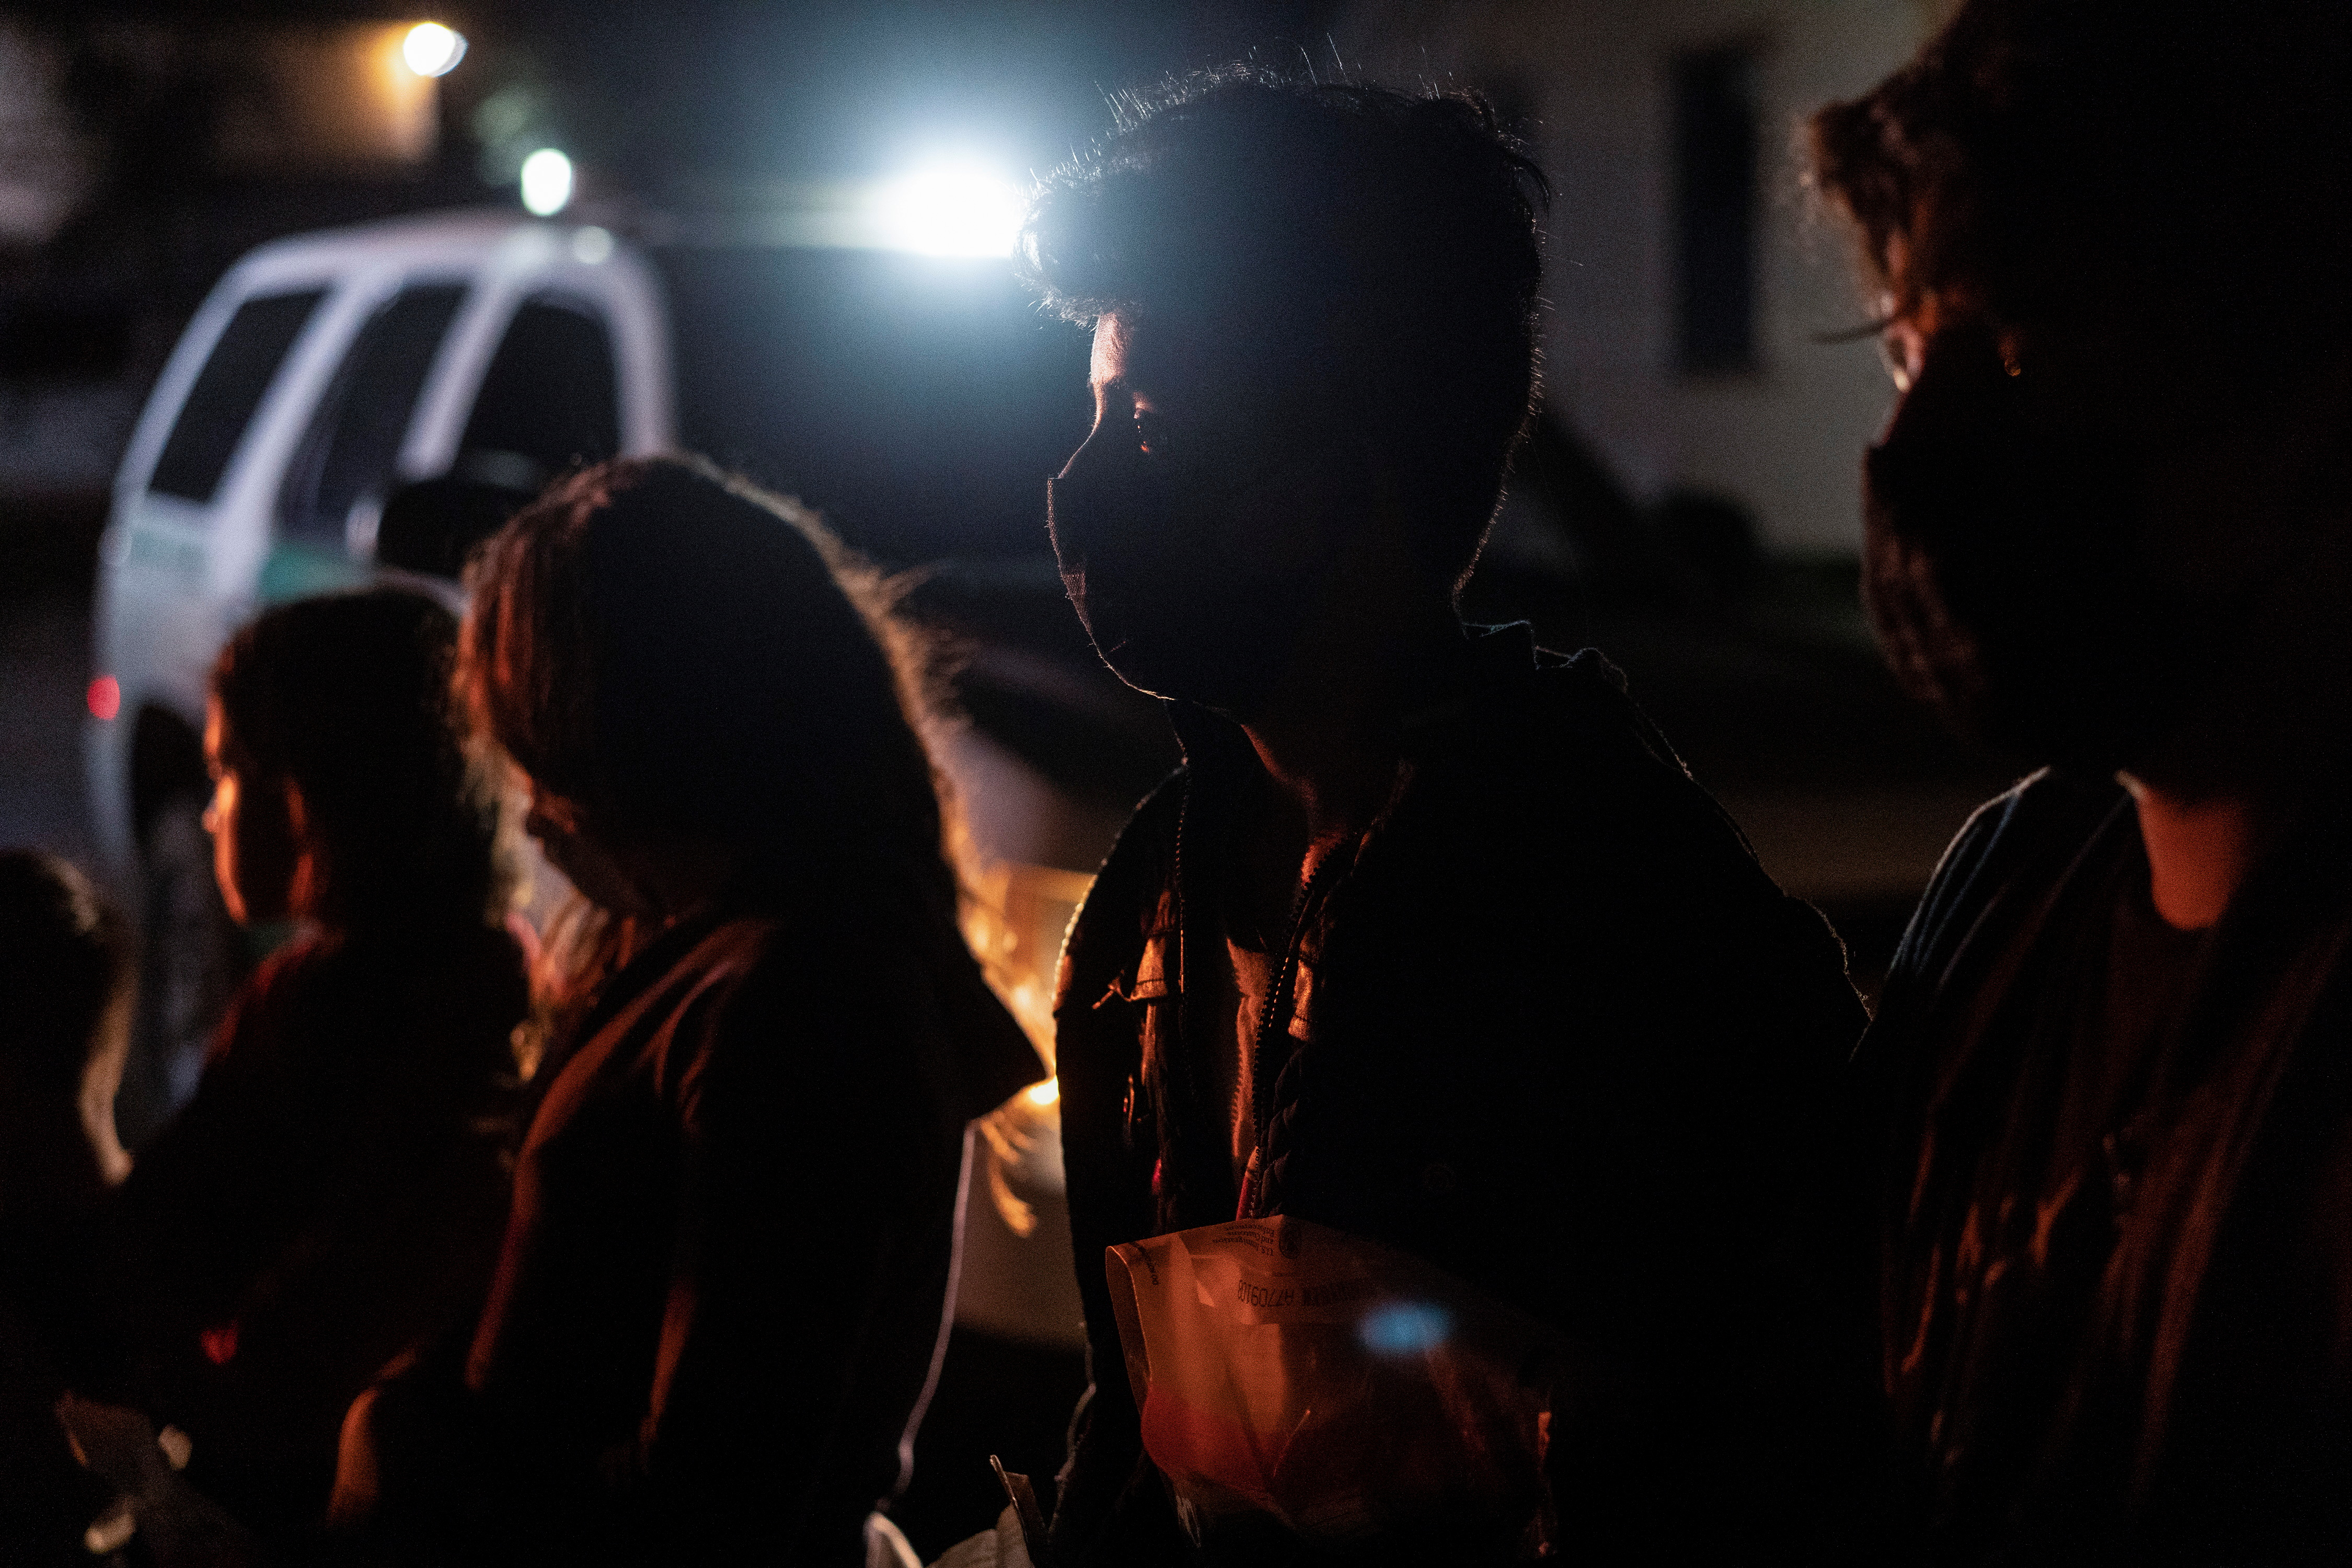 Unaccompanied minor migrants from Central America wait to be processed by the U.S. Border Patrol agents after crossing the Rio Grande river into the United States from Mexico in Roma, Texas, U.S., July 30, 2021. REUTERS/Go Nakamura